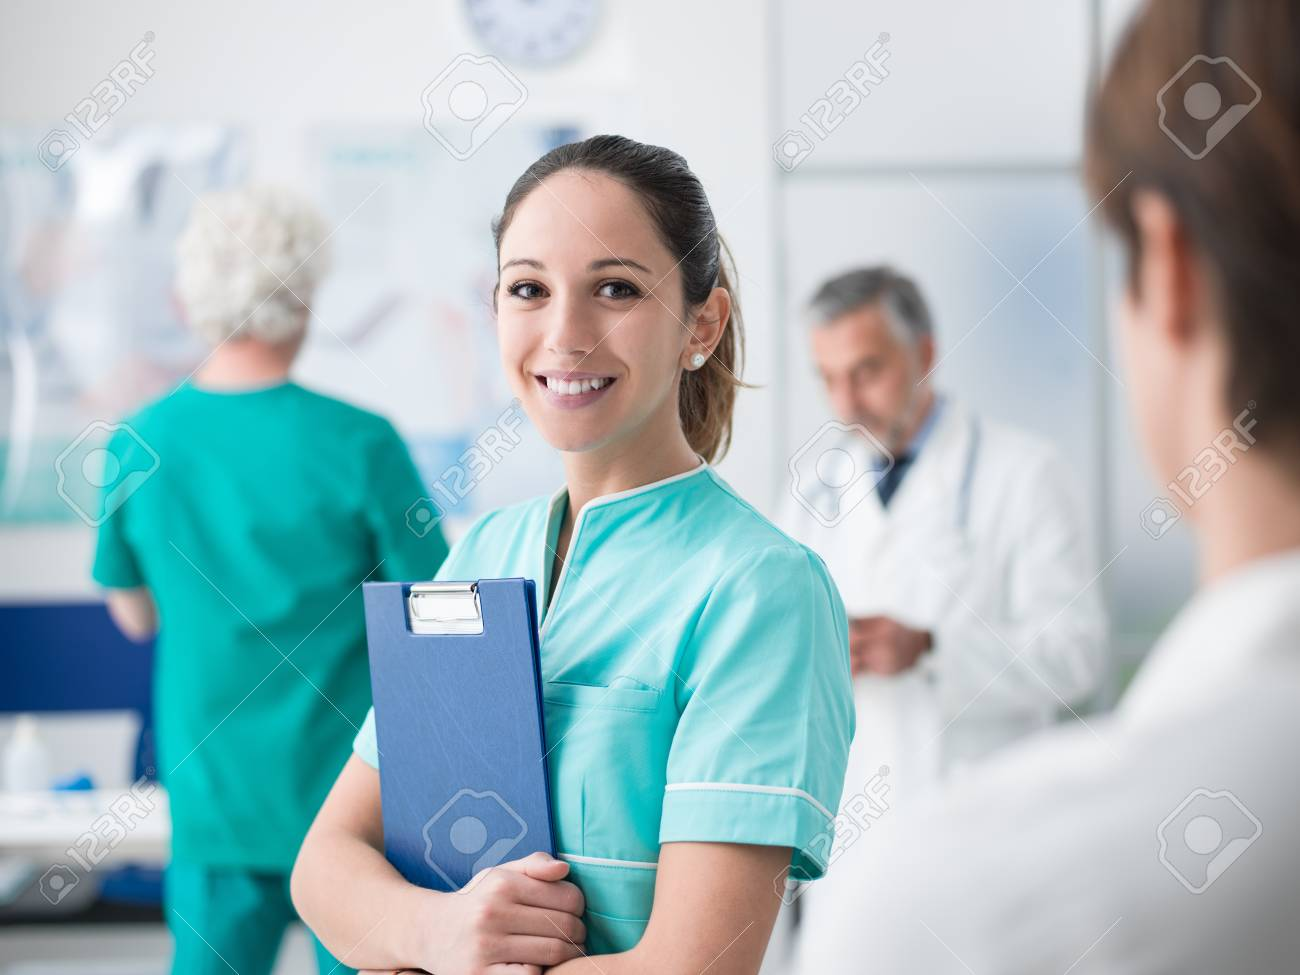 Young female medical student working at the hospital and medical staff, she is holding medical records - 96977320